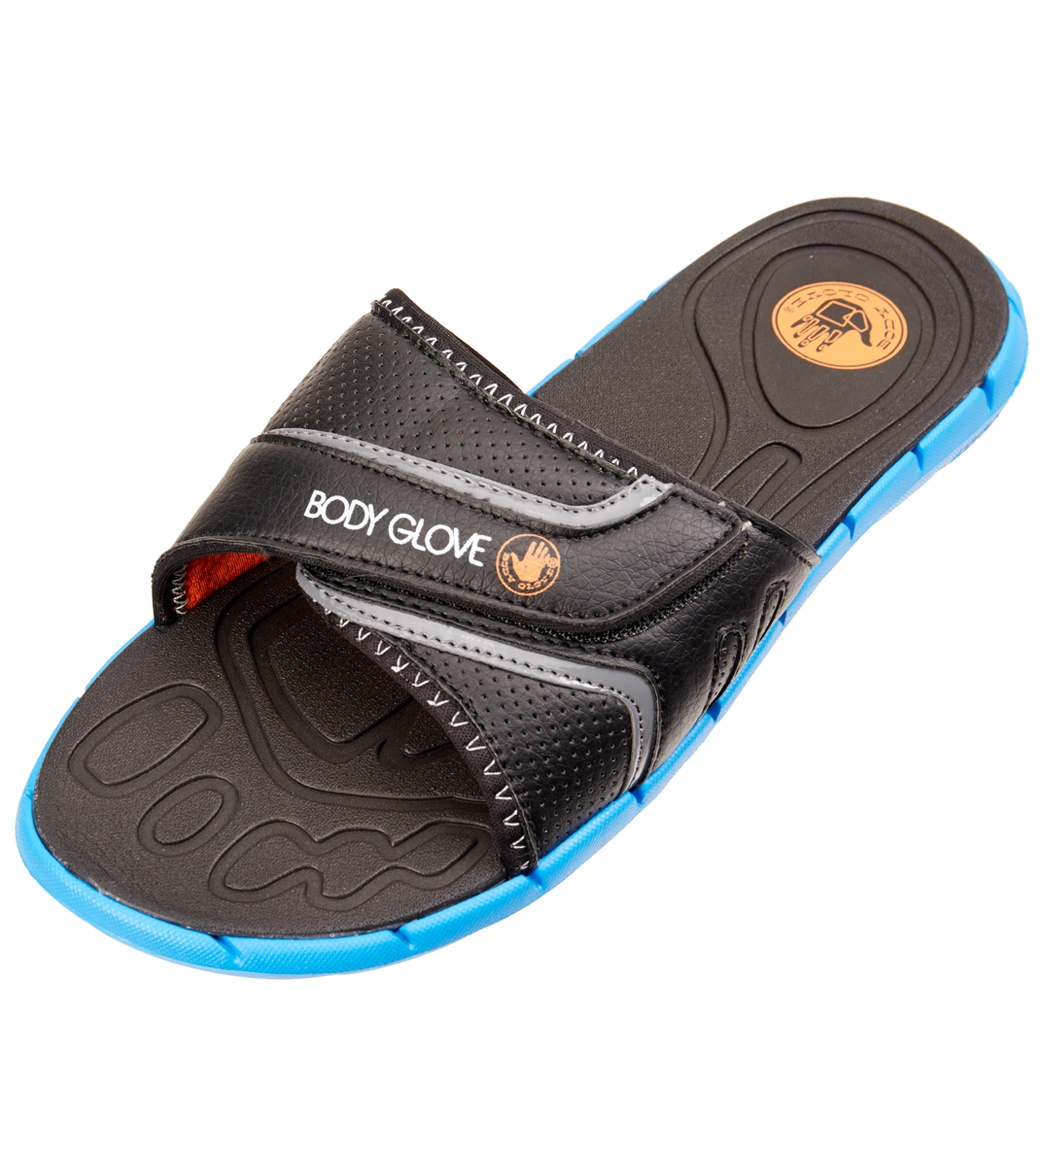 Body Glove® Strapped Slide Sandal